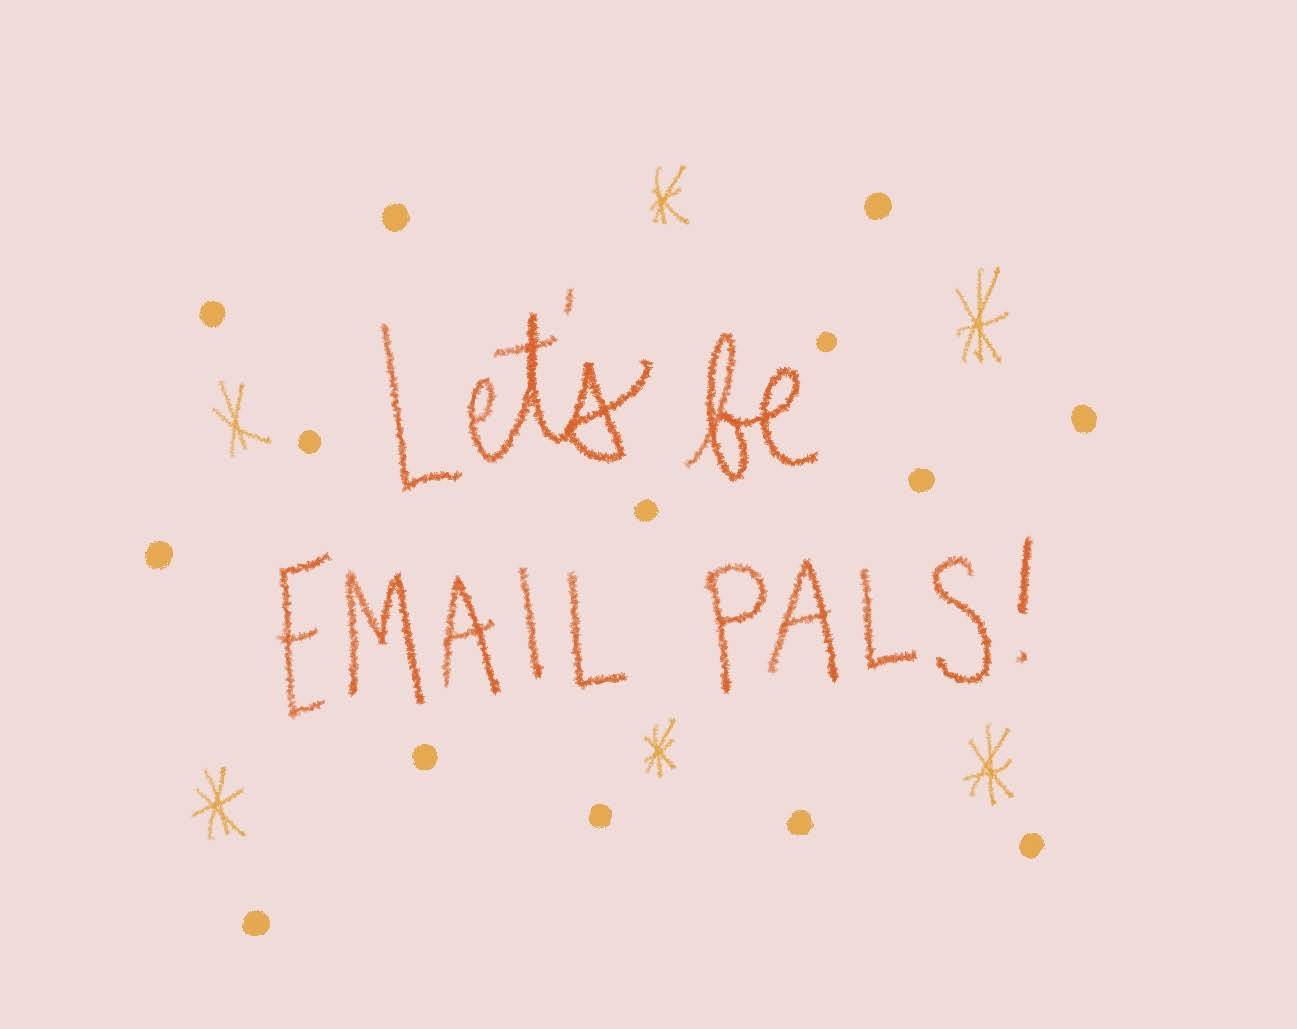 Sign up here to keep in touch! - I'll send you an email on the first day of the month with some treats and an update from the studio, and also you'll be the first to know when new patterns and products are released! The best way to keep in touch!